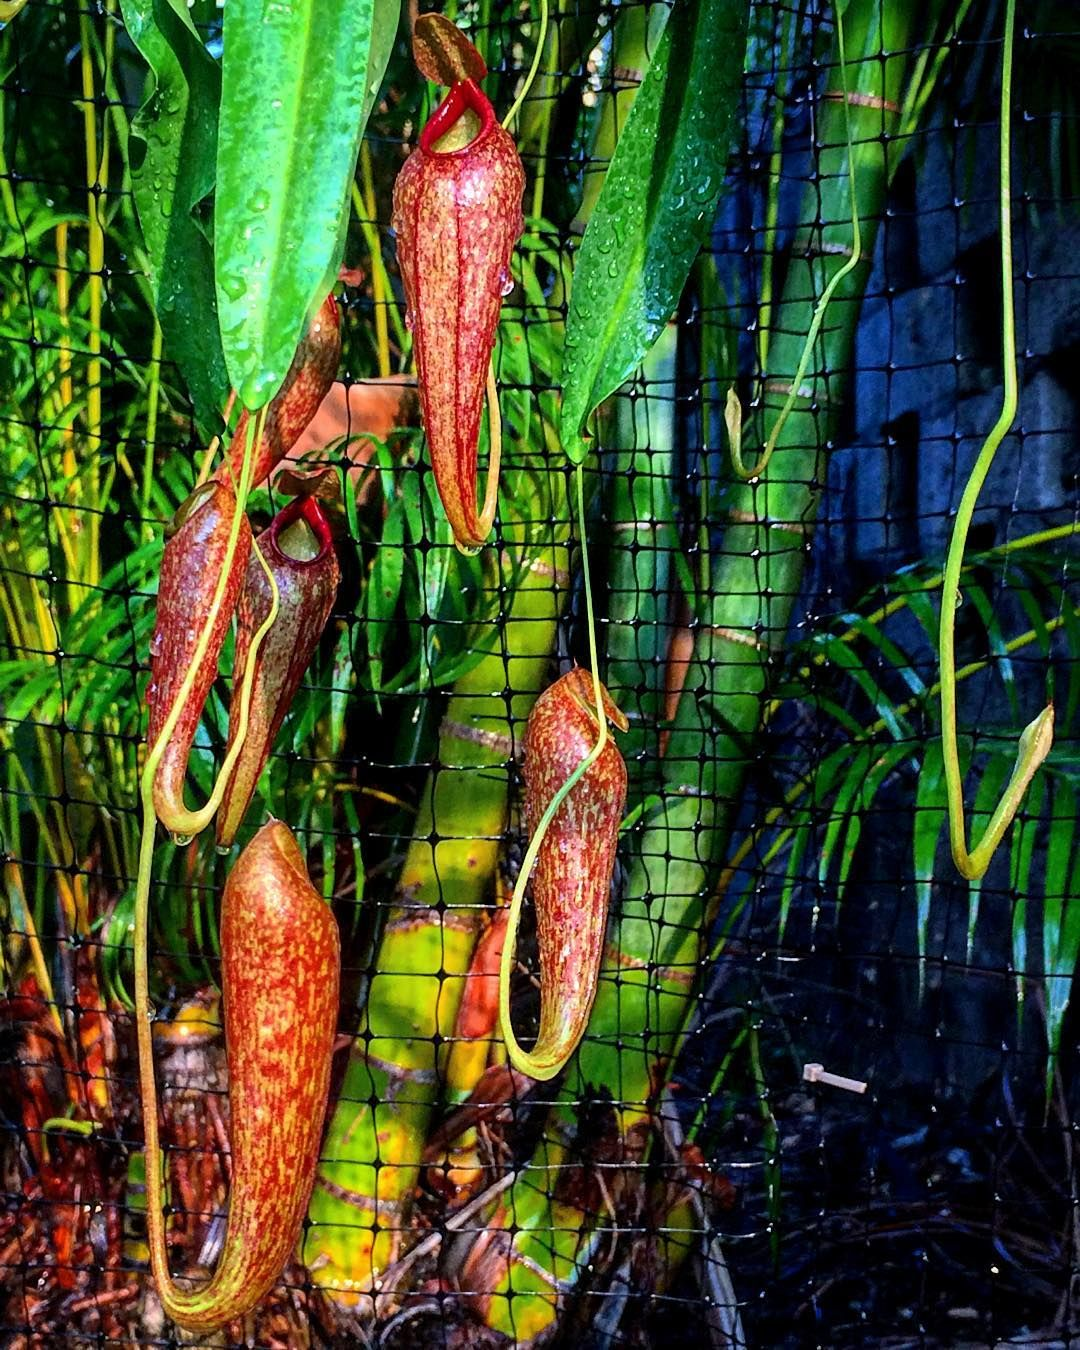 Nepenthes (thorelii x aristolochioides) #nepenthes #pitcherplants #carnivorousplants #carnivorousplantnerds #carnivorousplantsofinstagram #plants #plantascarnivoras #rareplants #botanical #horticulture #nature #garden #californiacarnivores @california_carnivores by ricardodeycaza